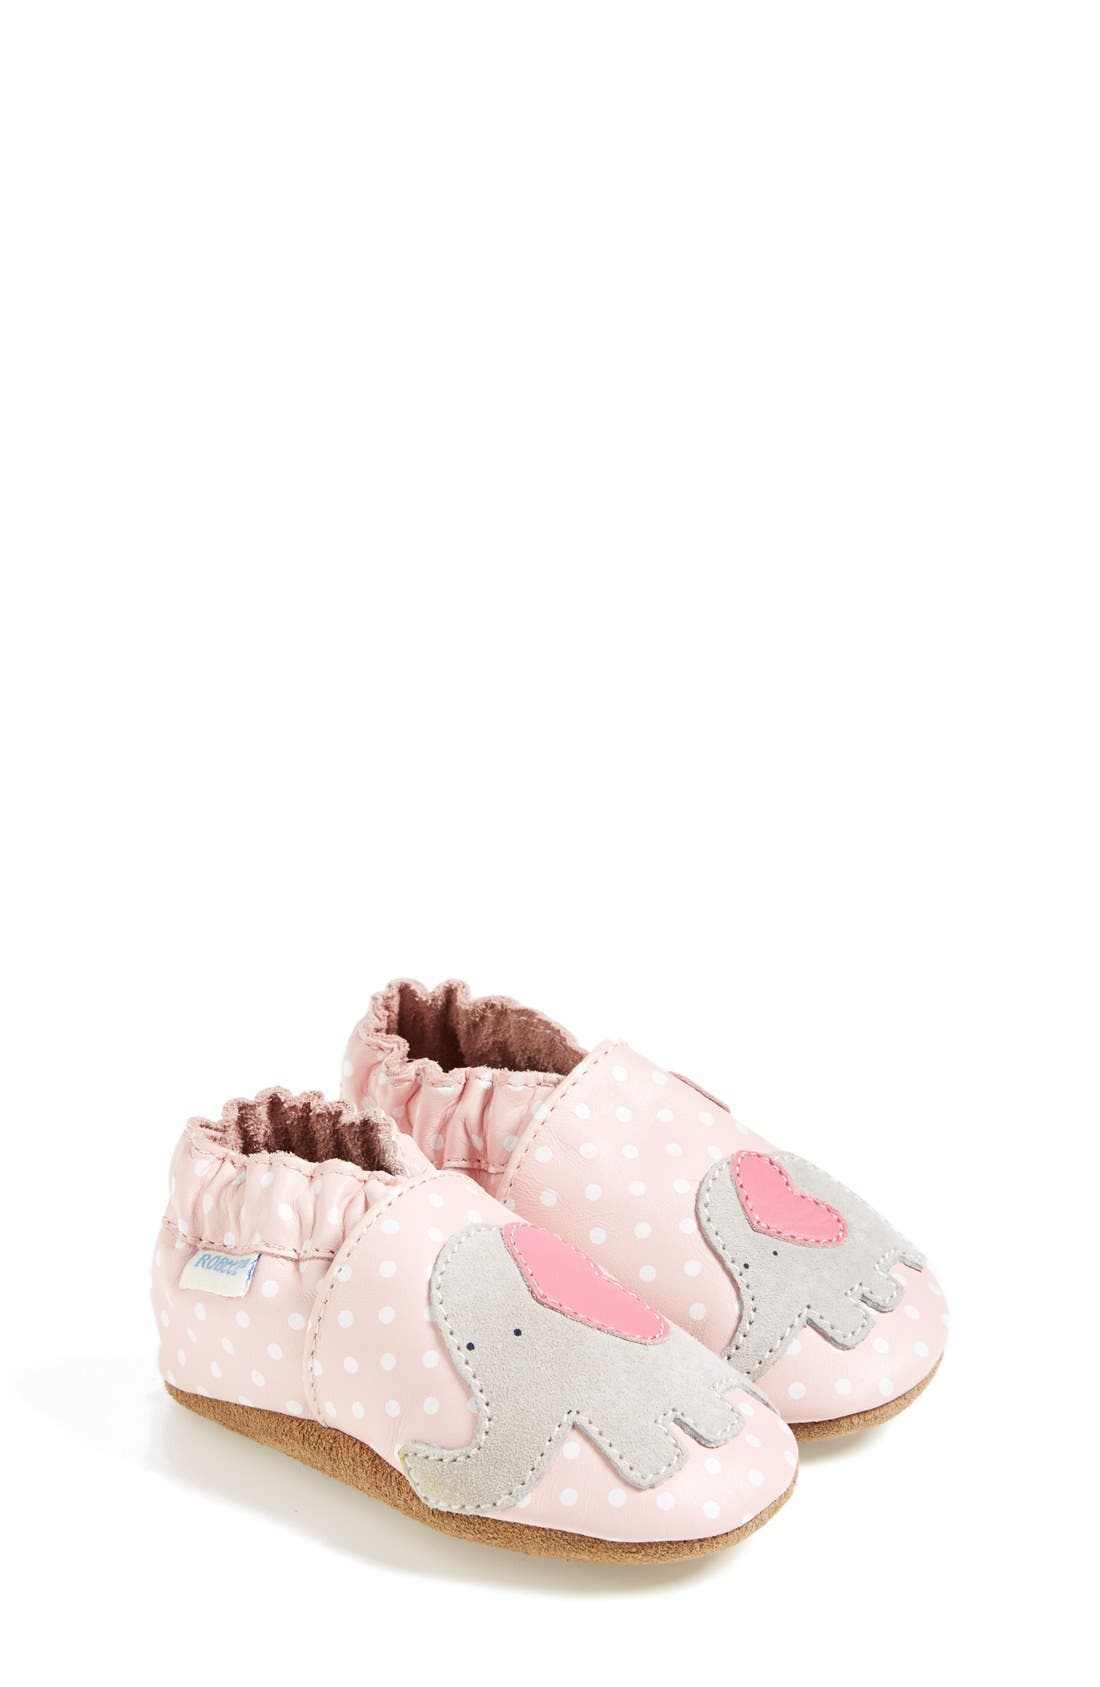 ROBEEZ<SUP>®</SUP> Little Peanut Crib Shoe